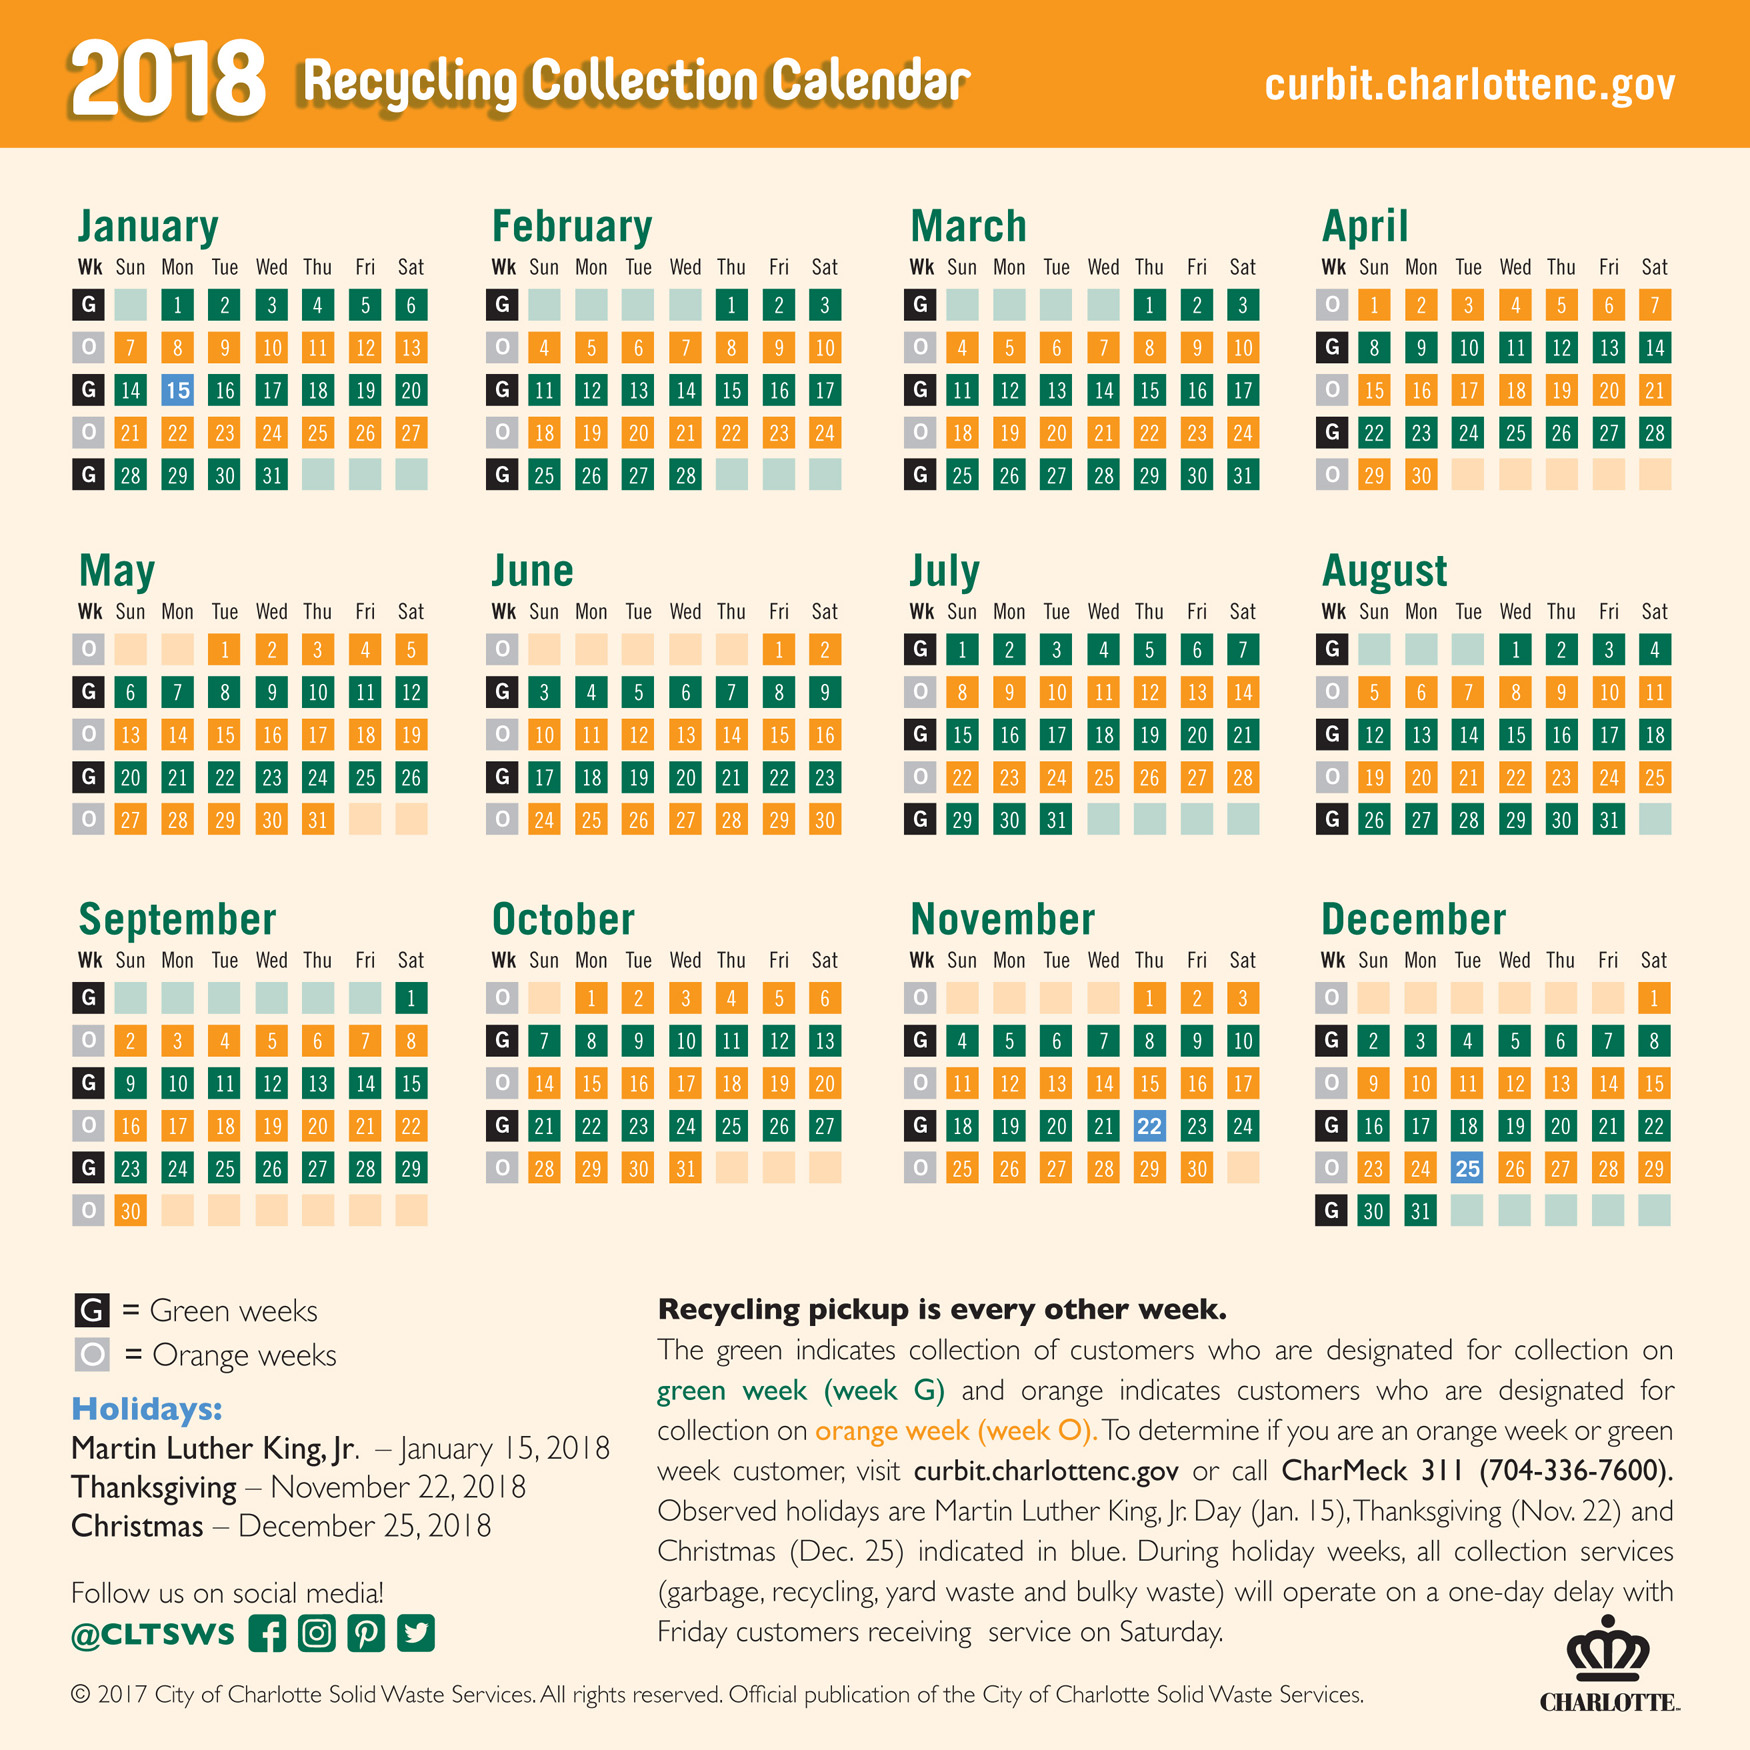 solid waste services recycling collection schedule